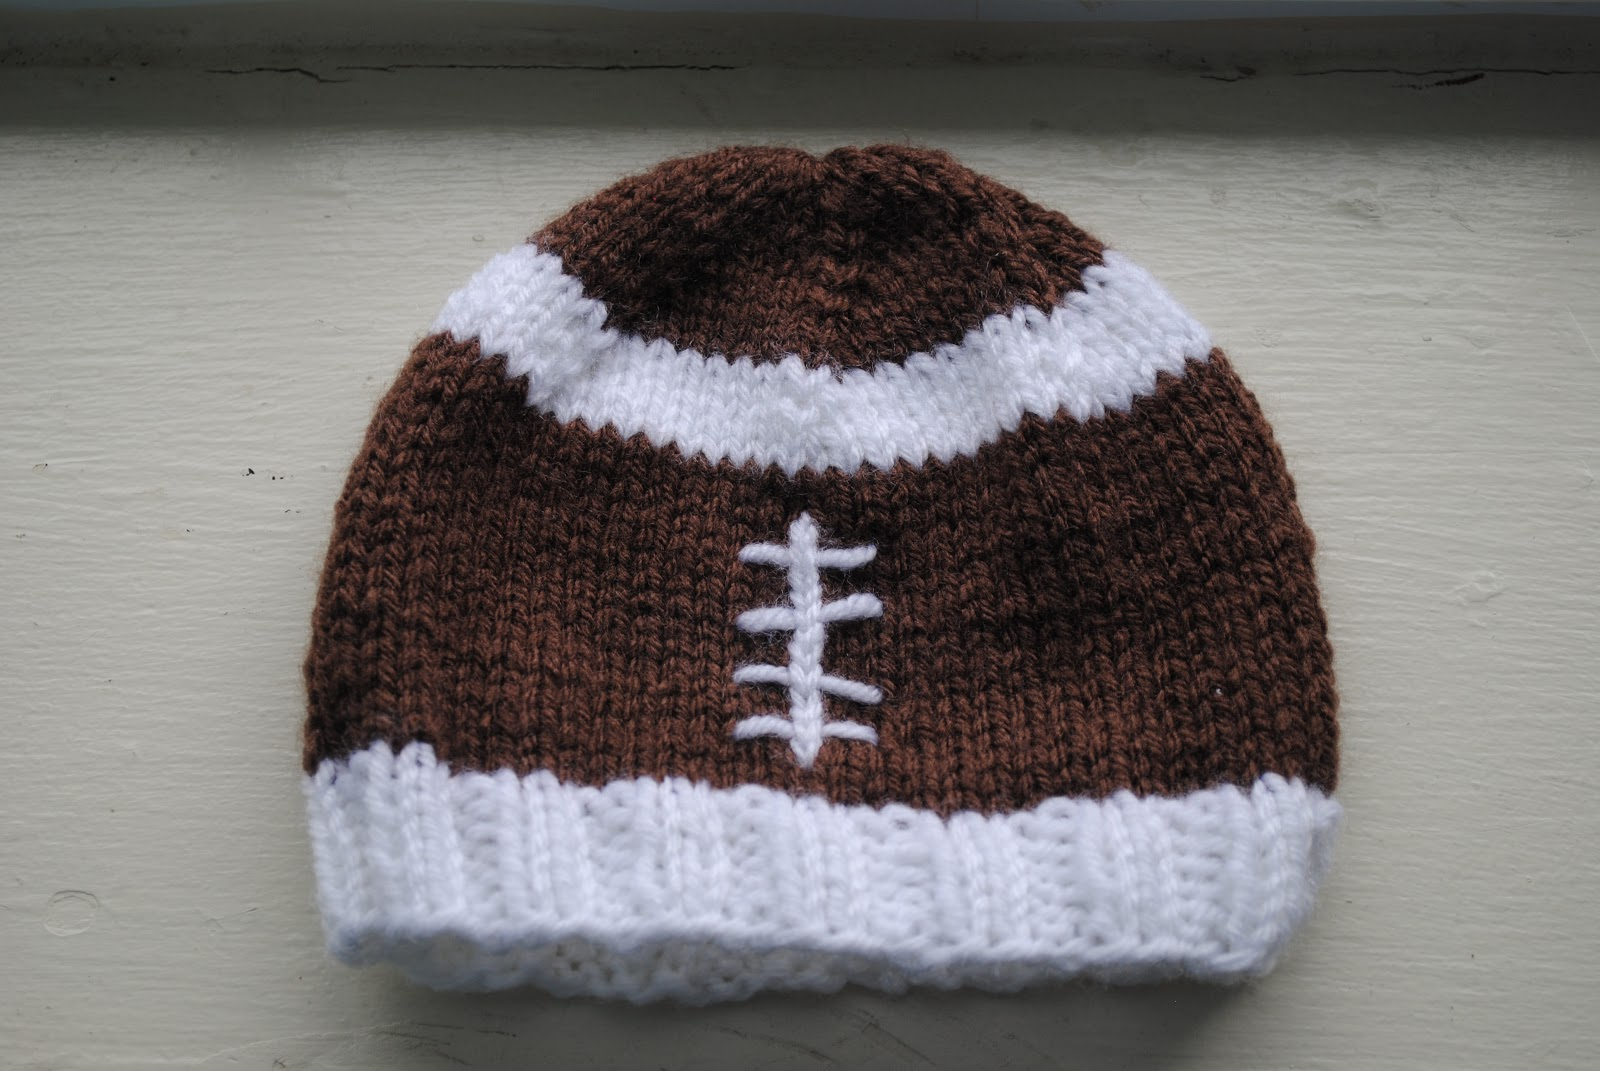 Crochet Pattern Baby Hat Free : The Underground Hooker: Baby Football Hat